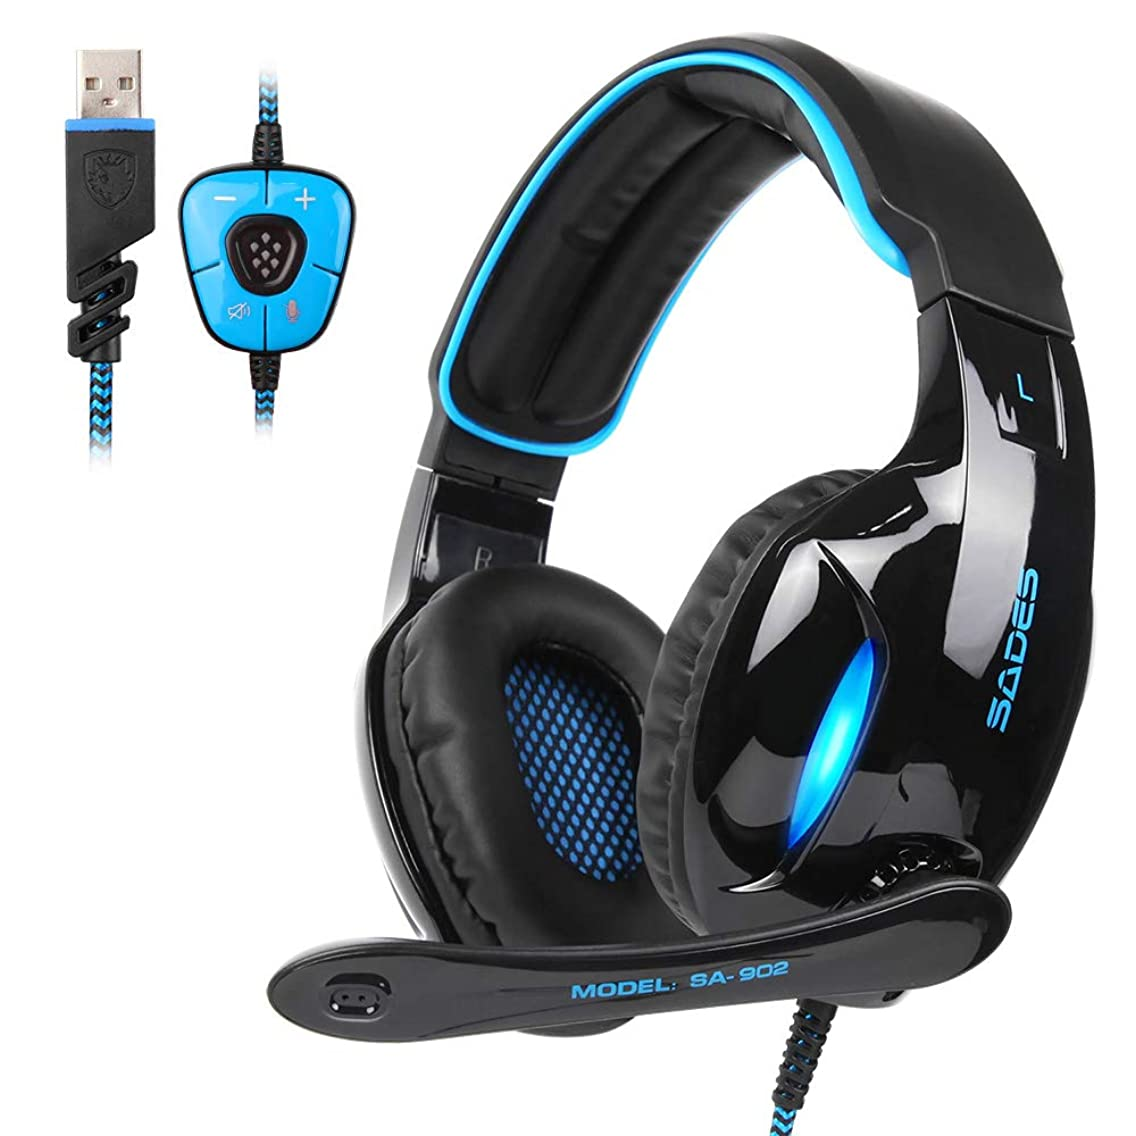 Computer Gaming Headset SADES Virtual 7.1 Channel USB Surround Stereo Wired PC Over Ear Gaming Headphones Mic Volume Control LED Light